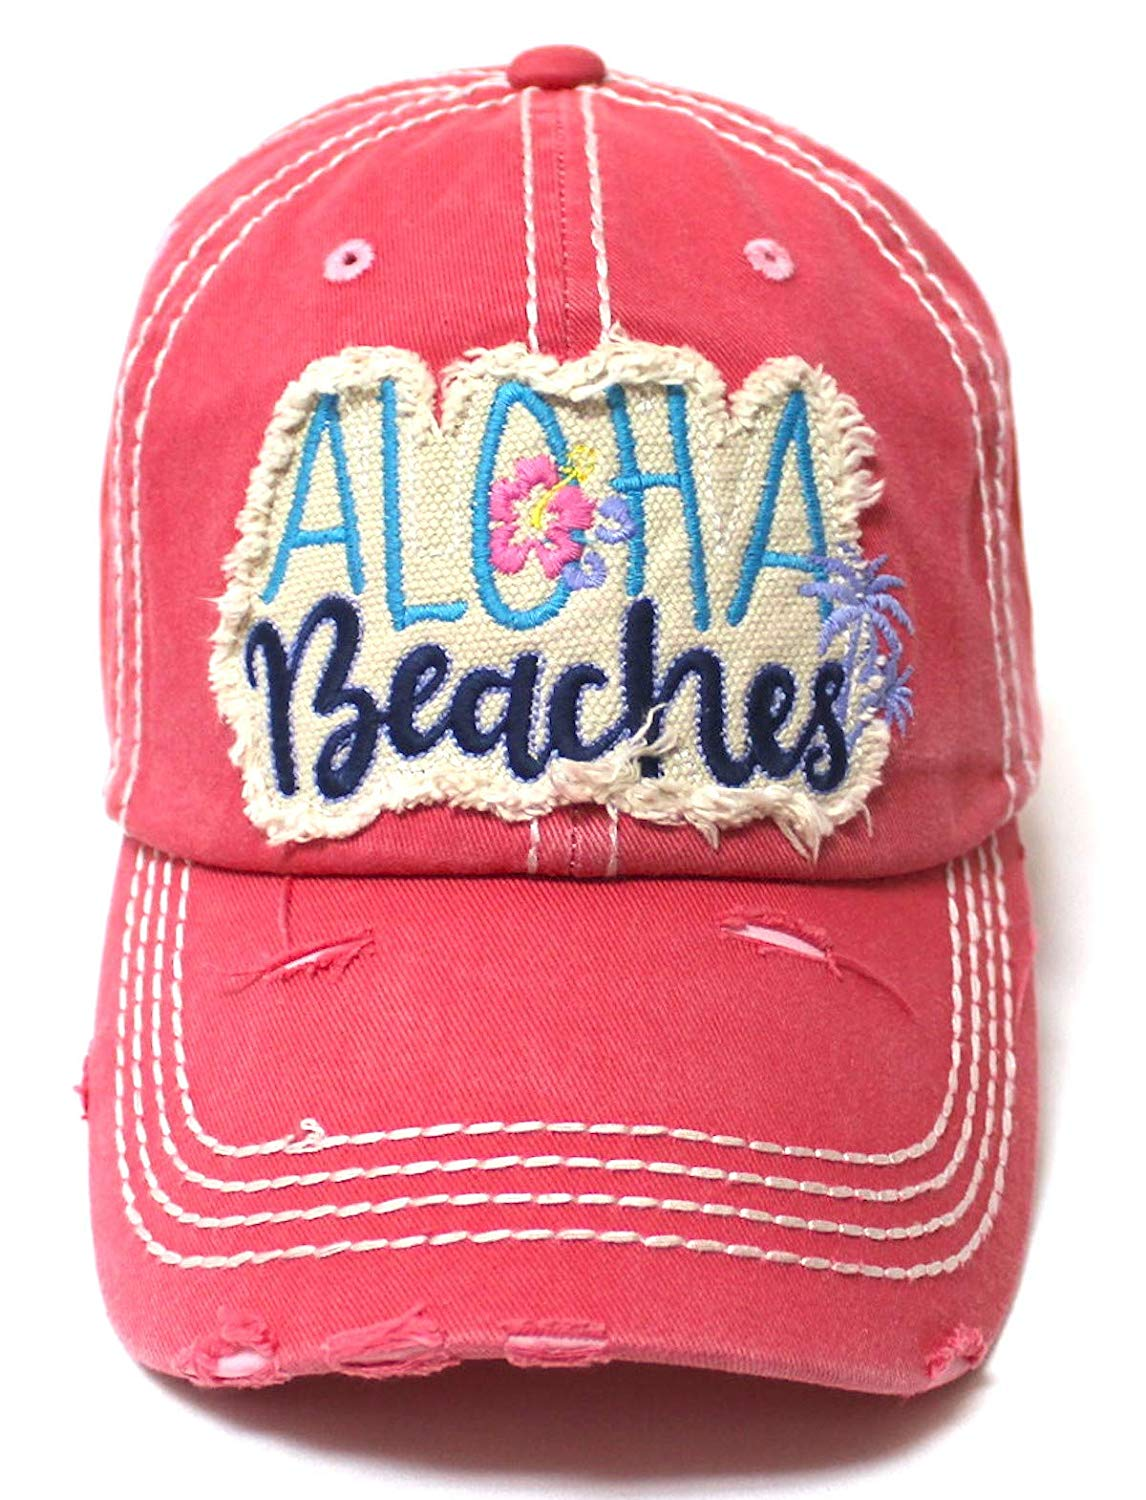 Aloha Beaches Patch Embroidery Distressed Baseball Hat, Coral Rose - Caps 'N Vintage